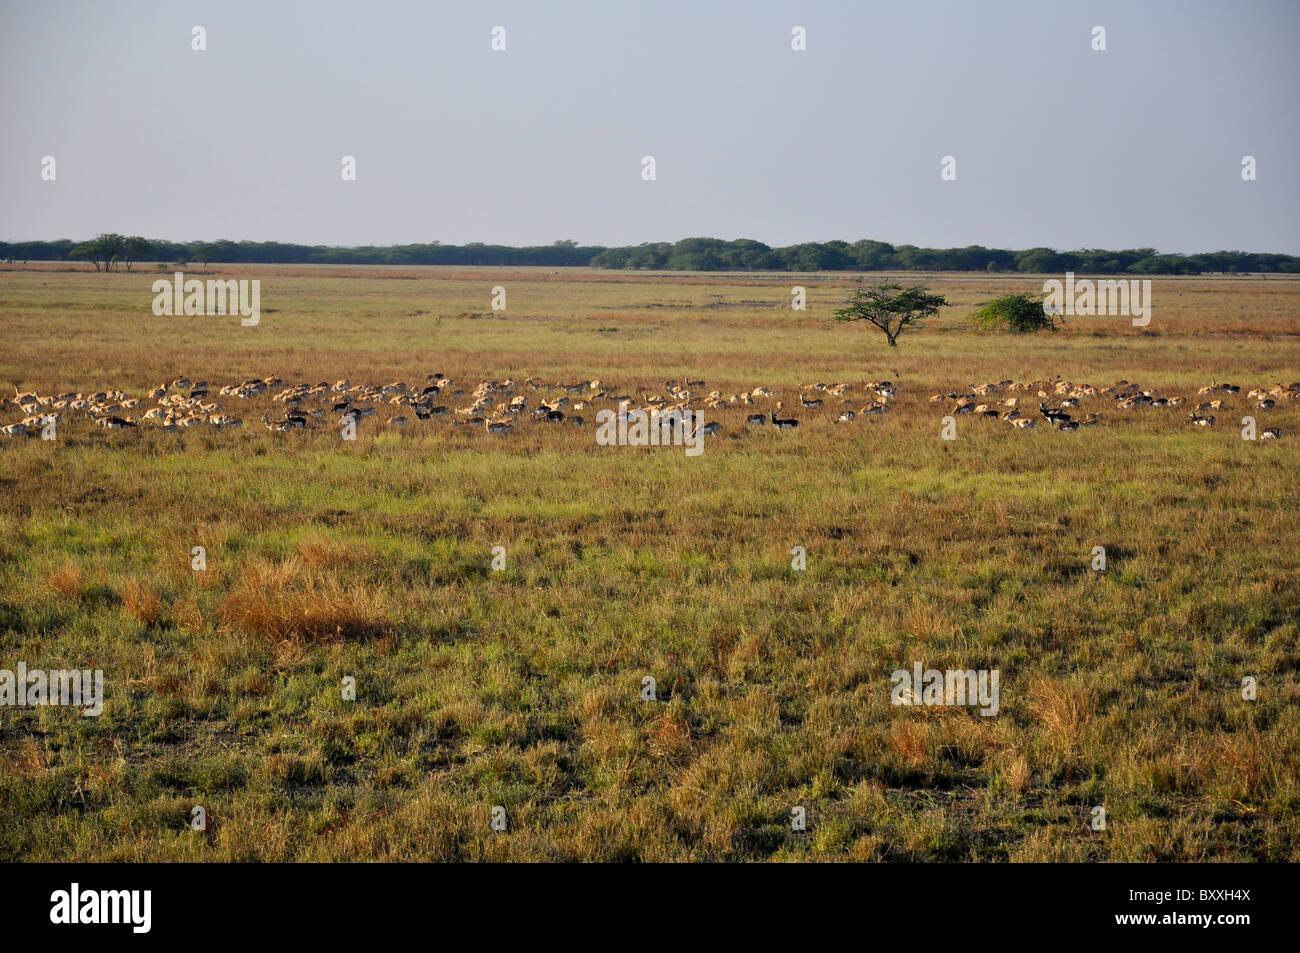 Black bucks in a grass land of Gujarat, India Stock Photo